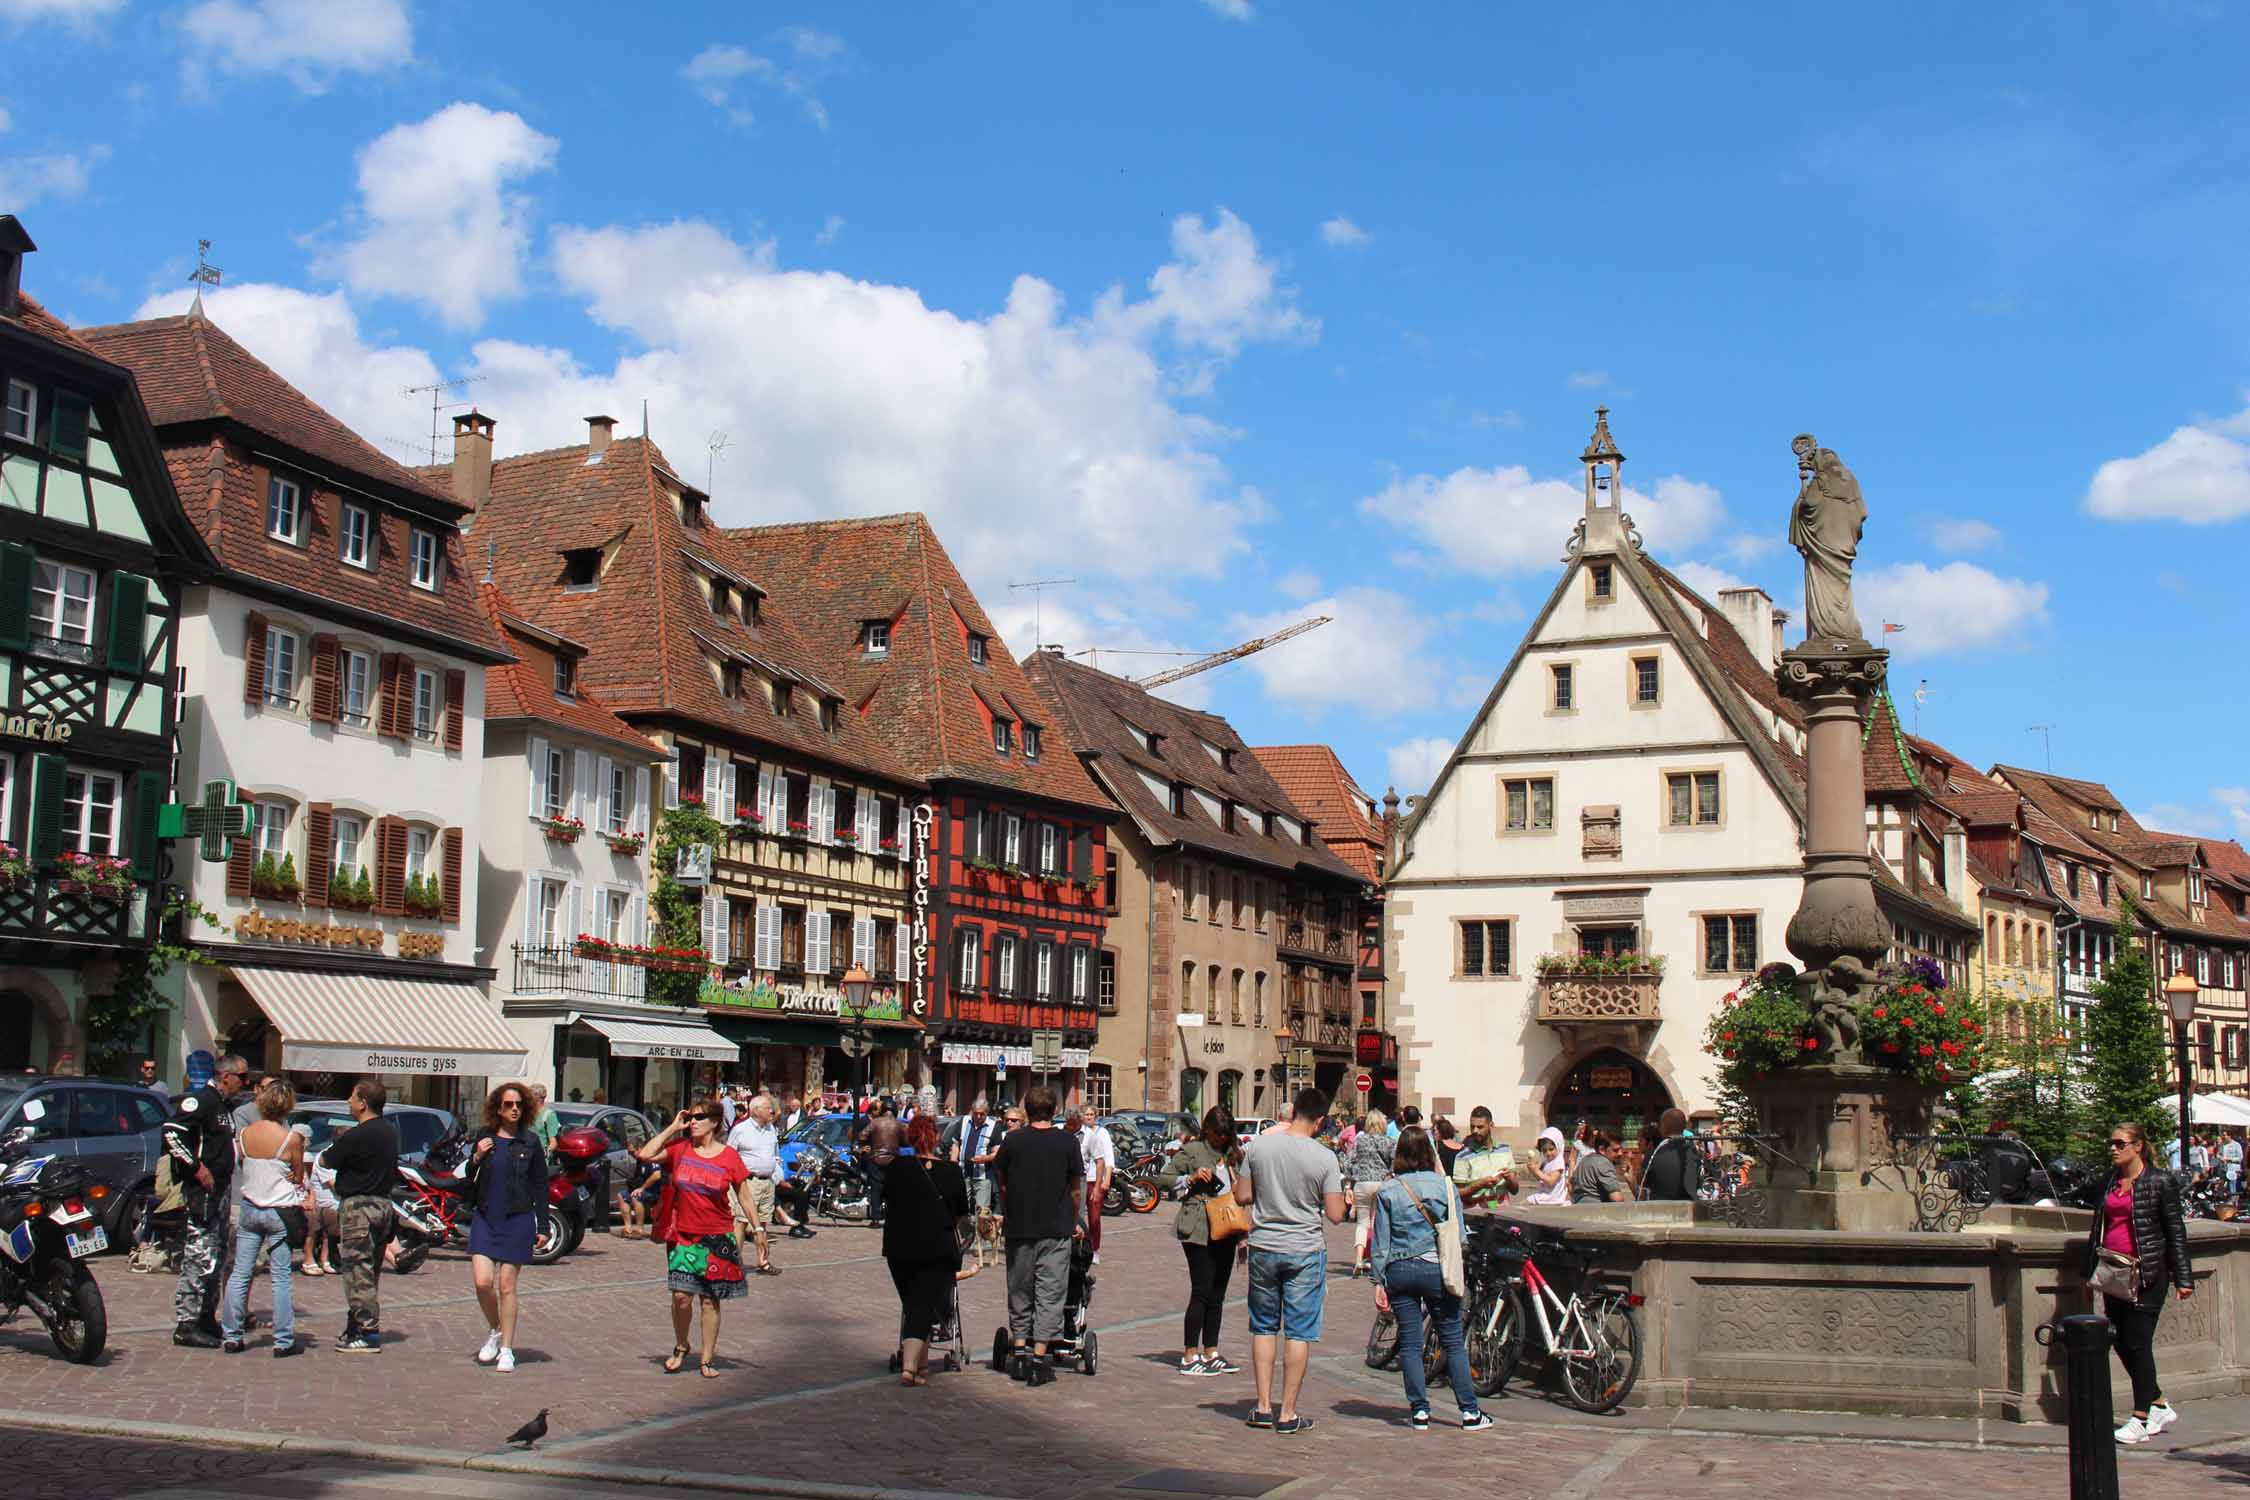 Obernai, central square